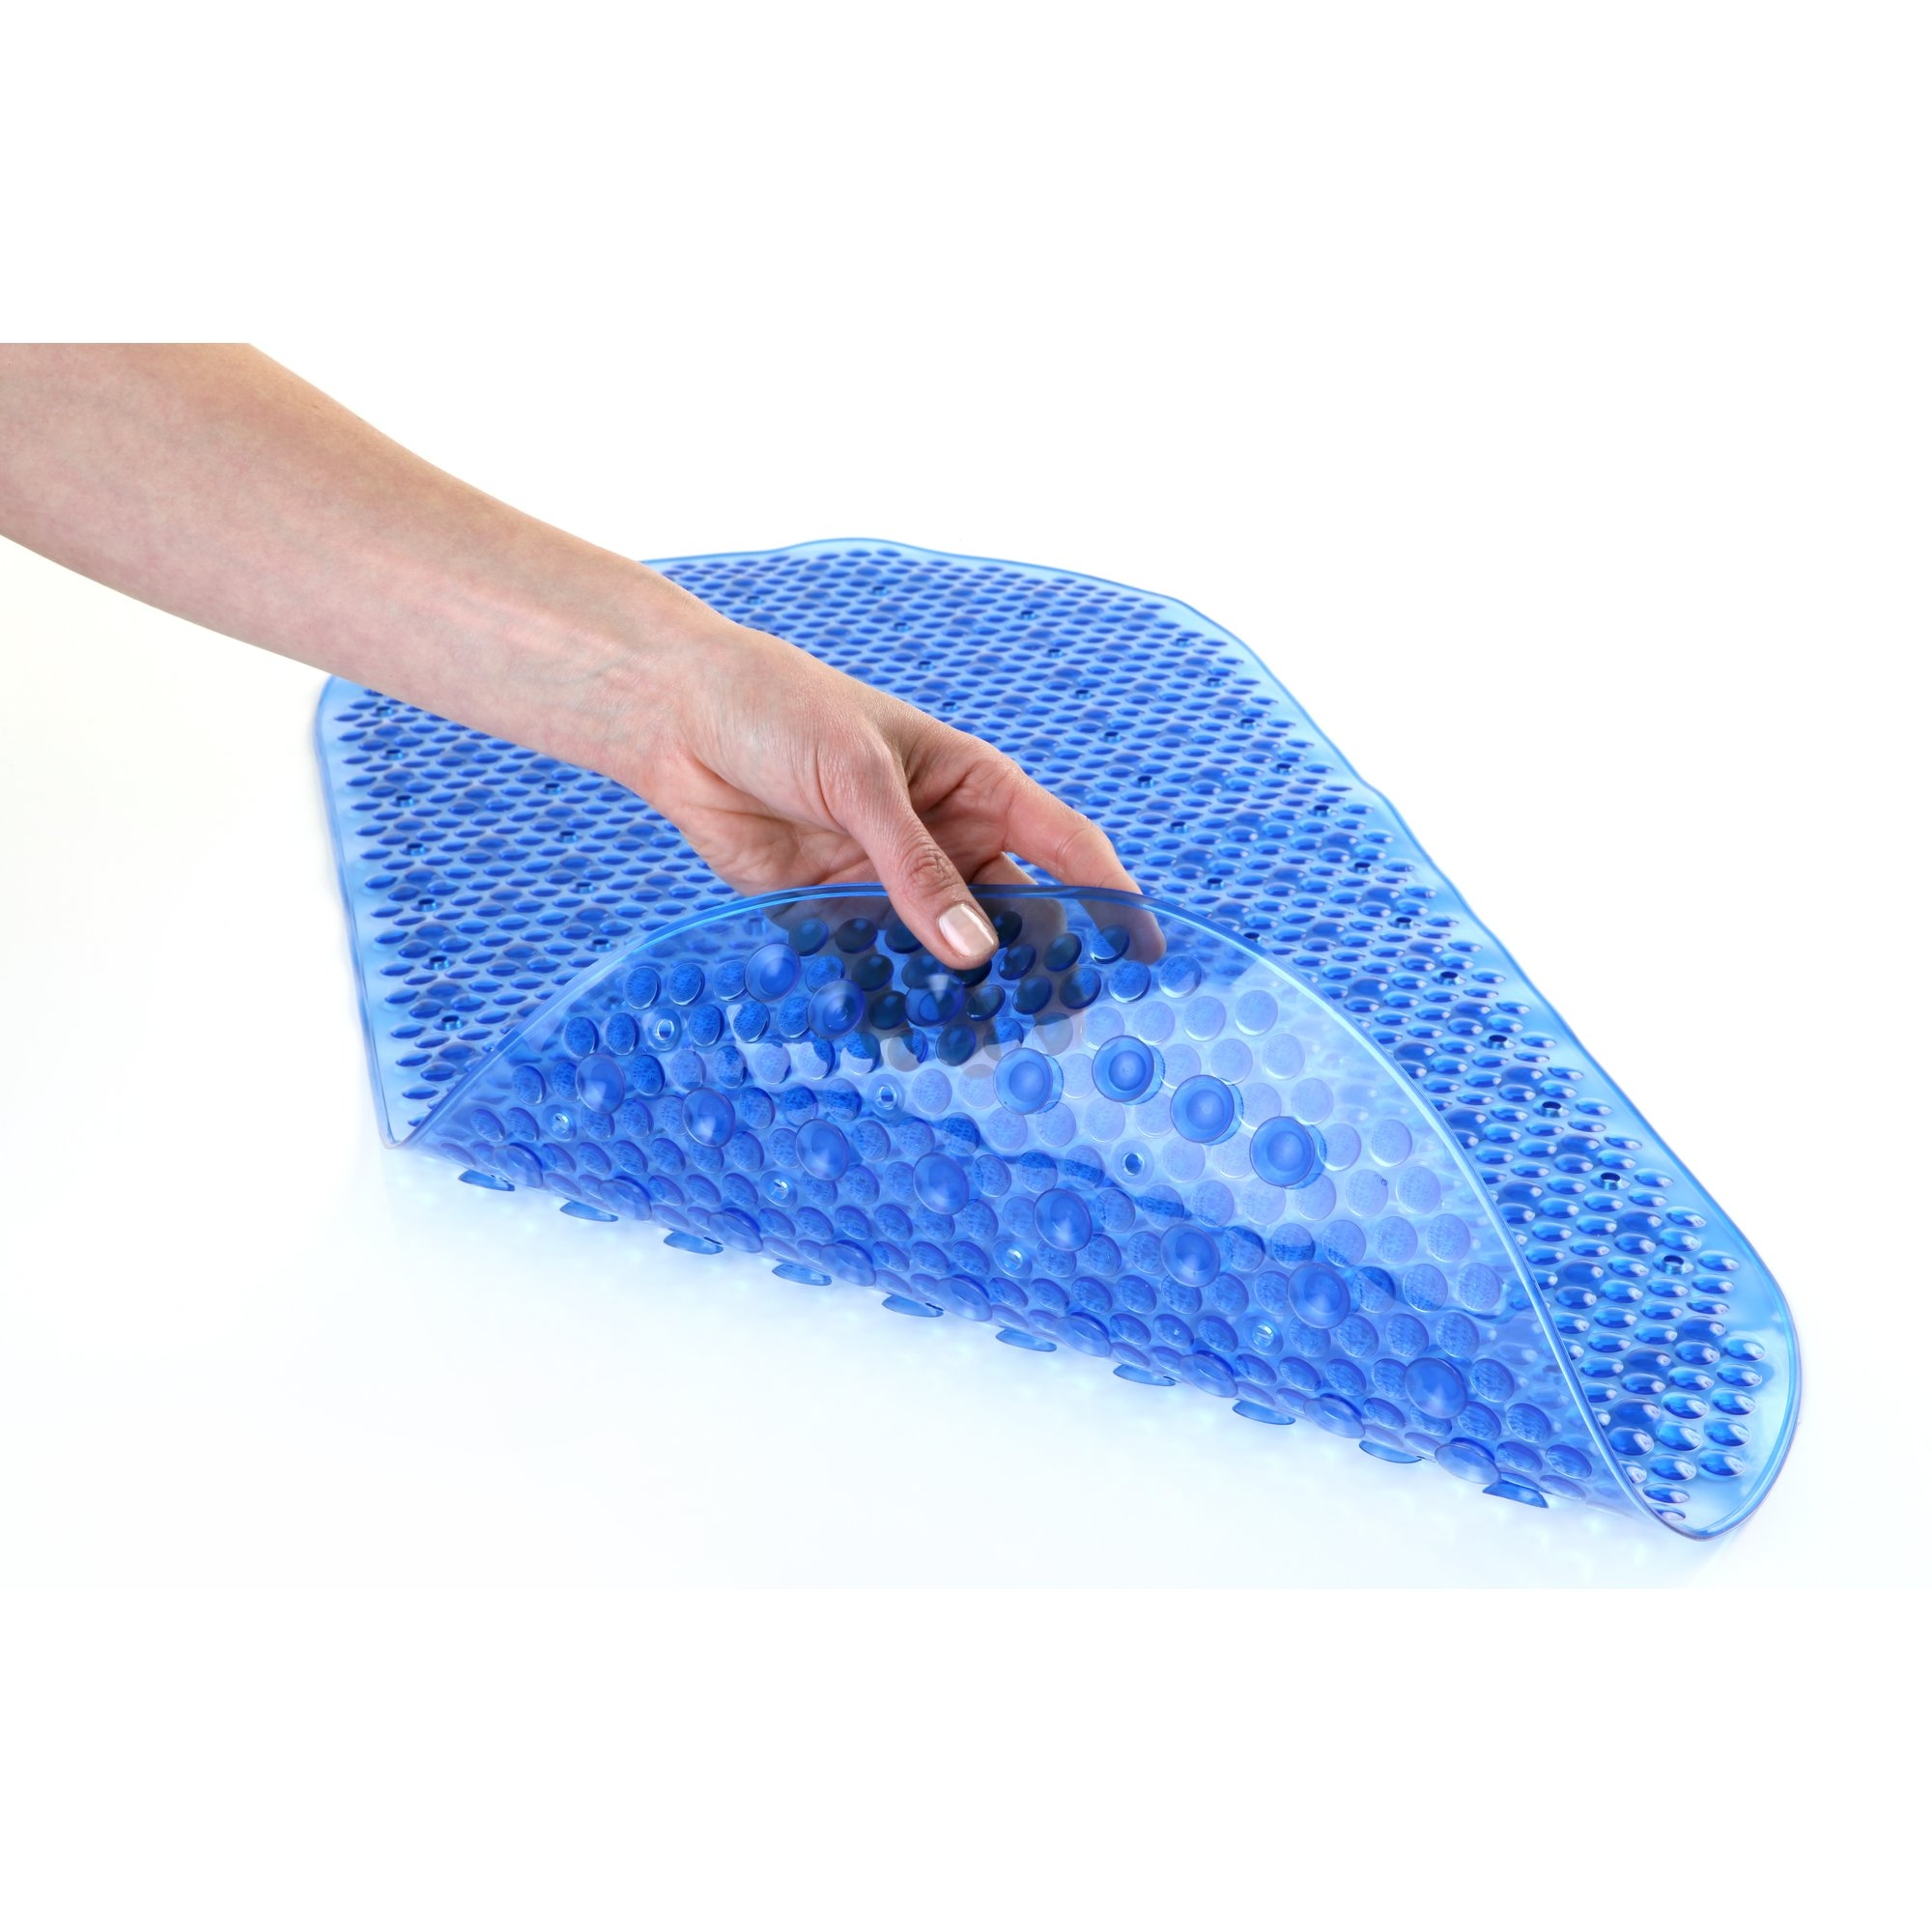 Permalink to Bubble Bath Mat